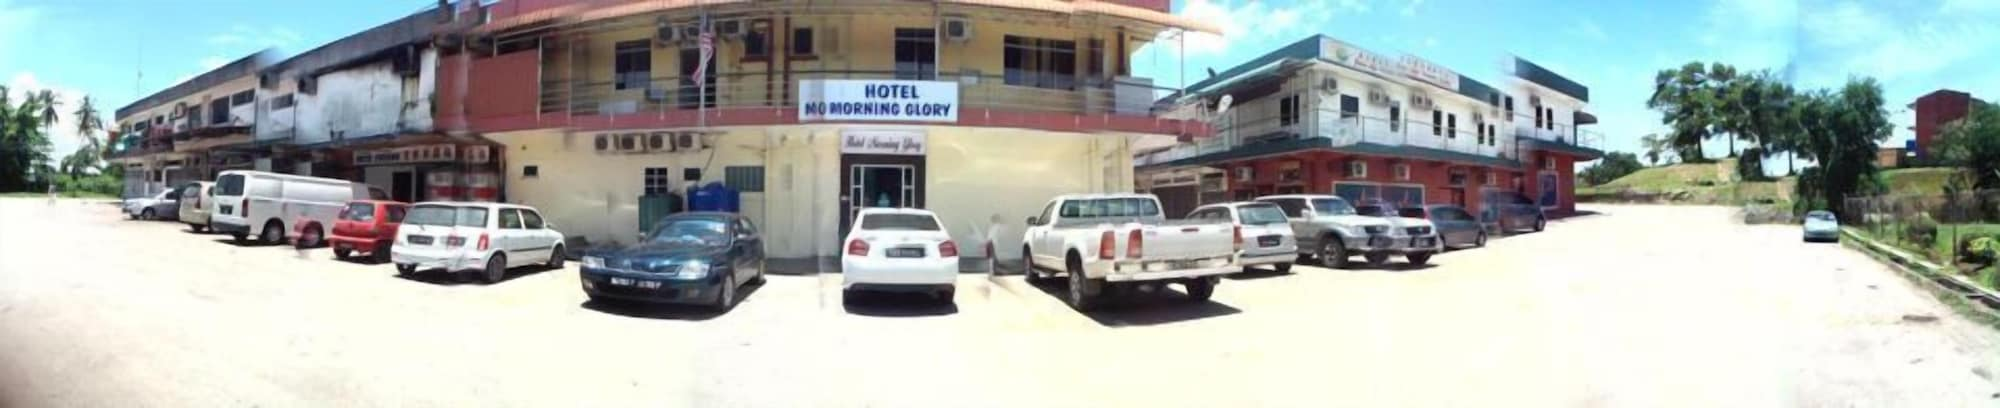 Hotel Morning Glory, Kudat